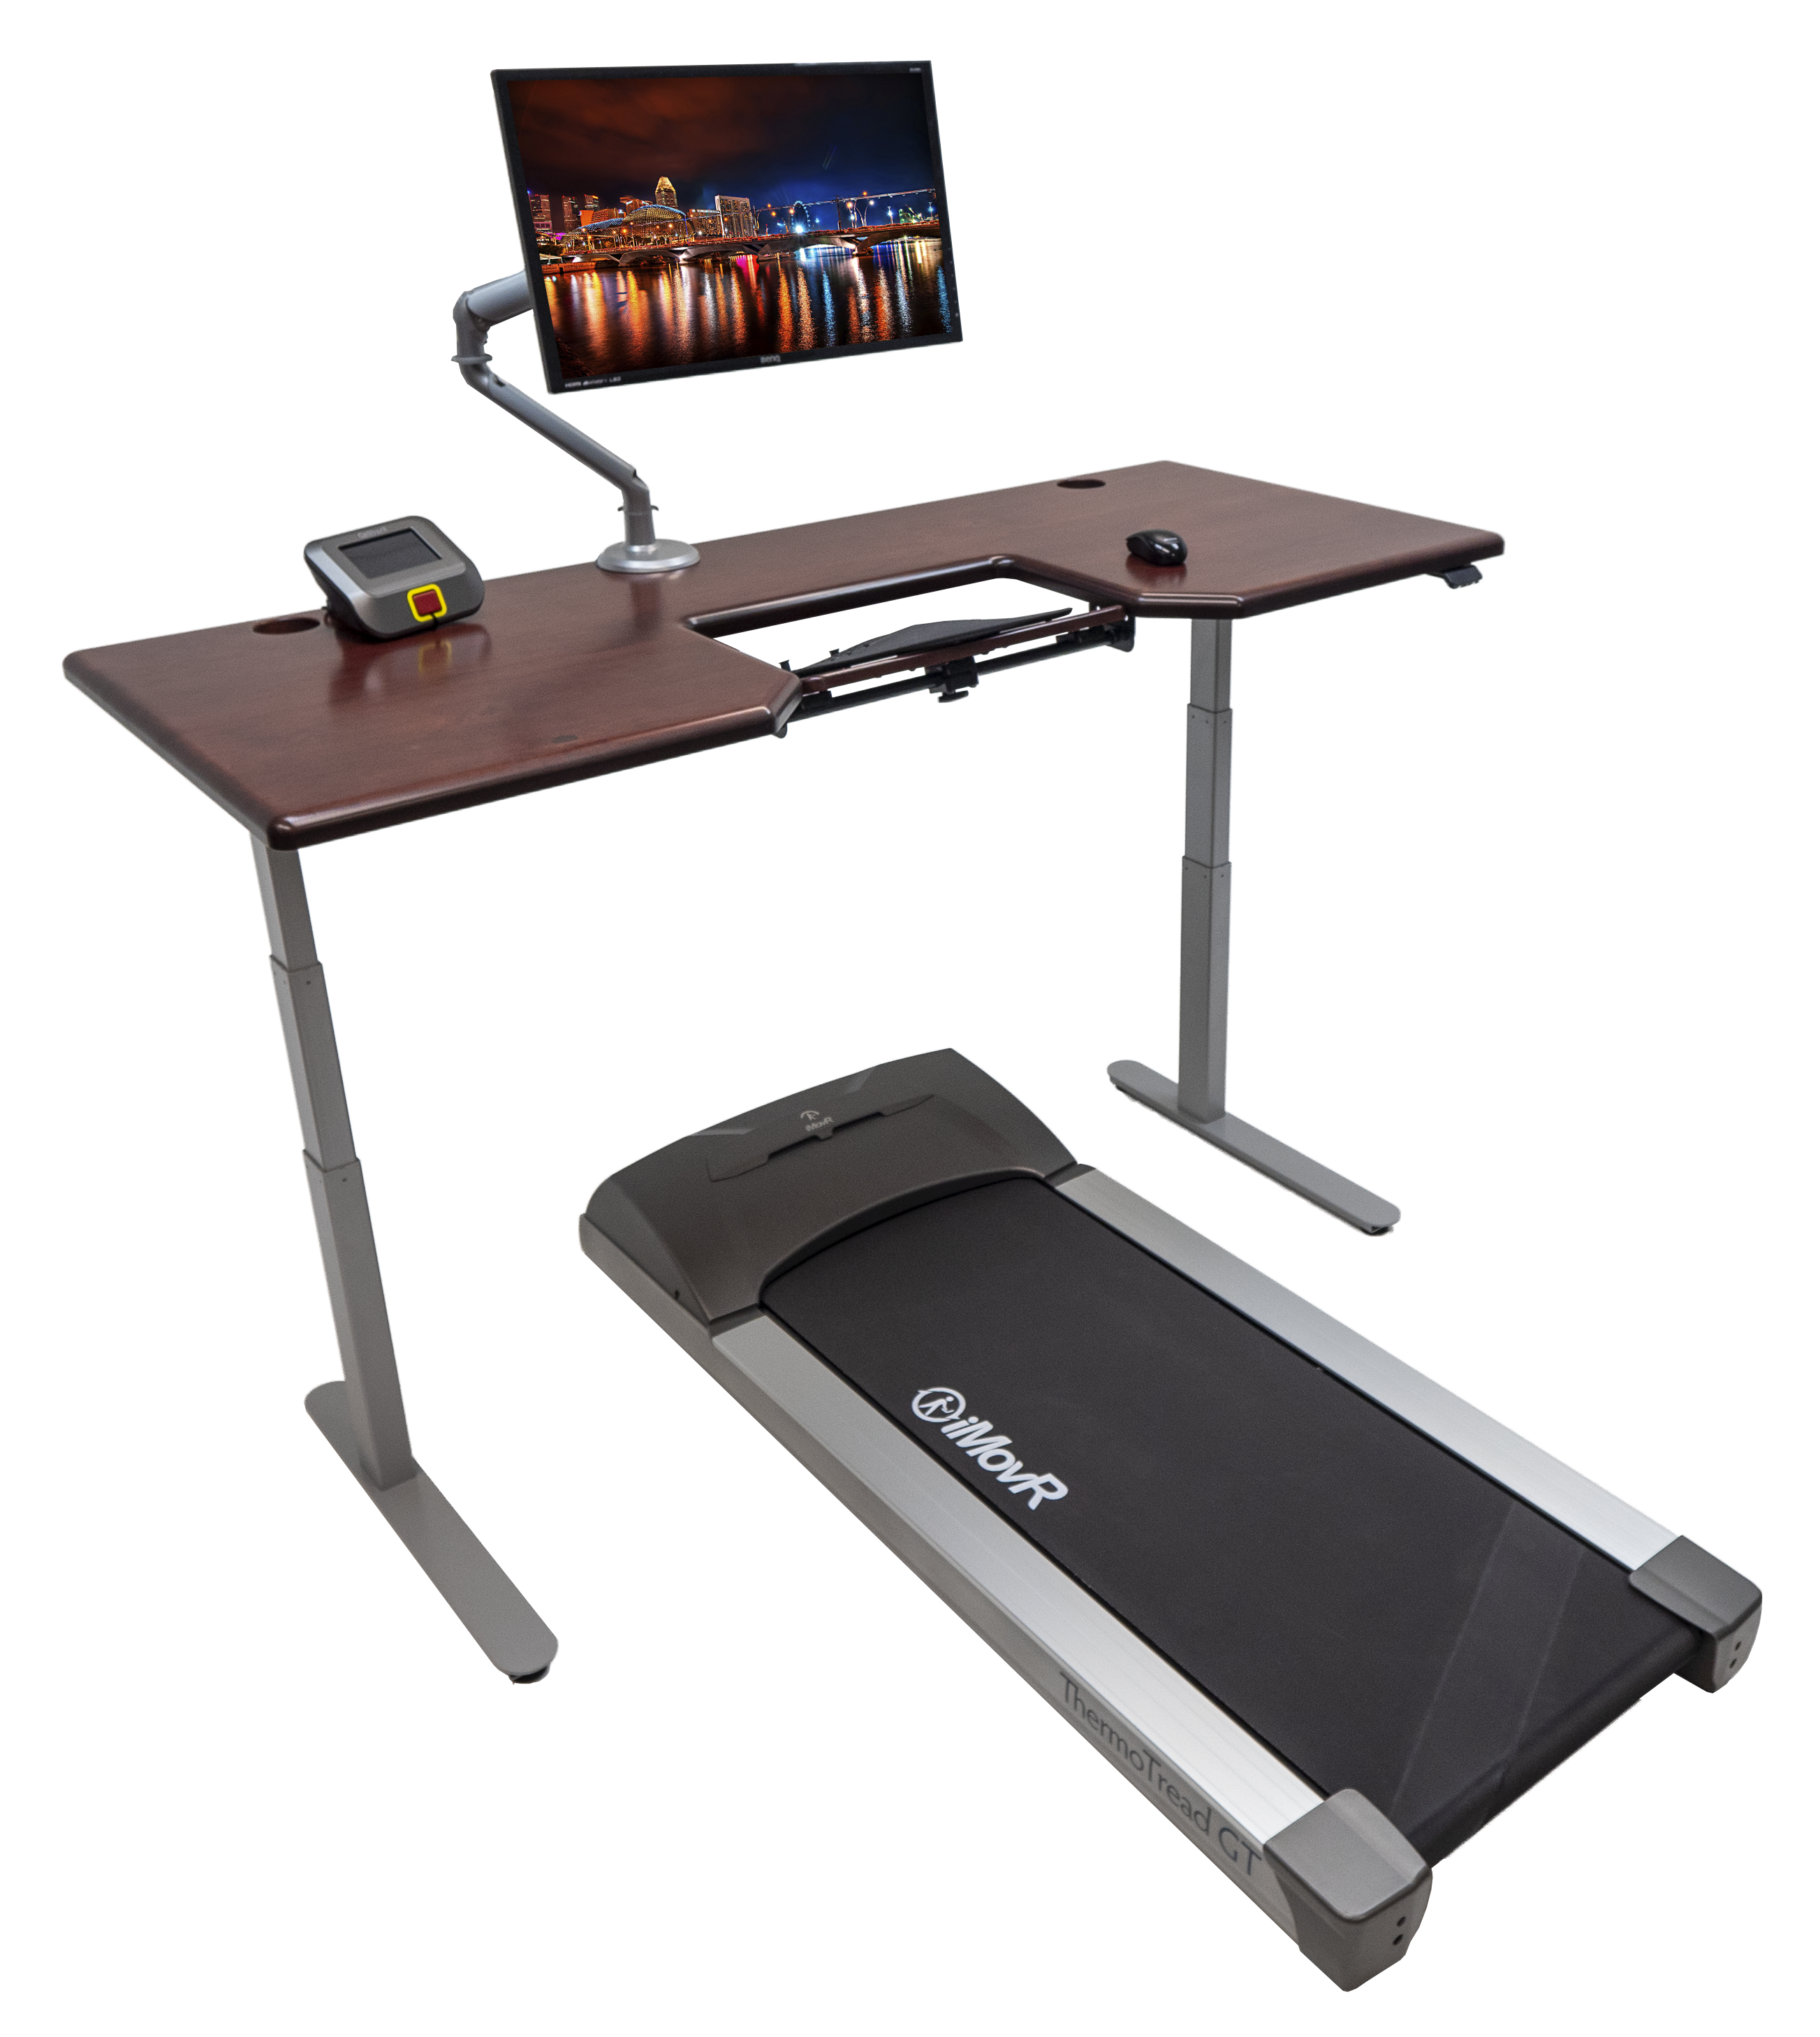 iMovR Lander Treadmill Desk with SteadyType